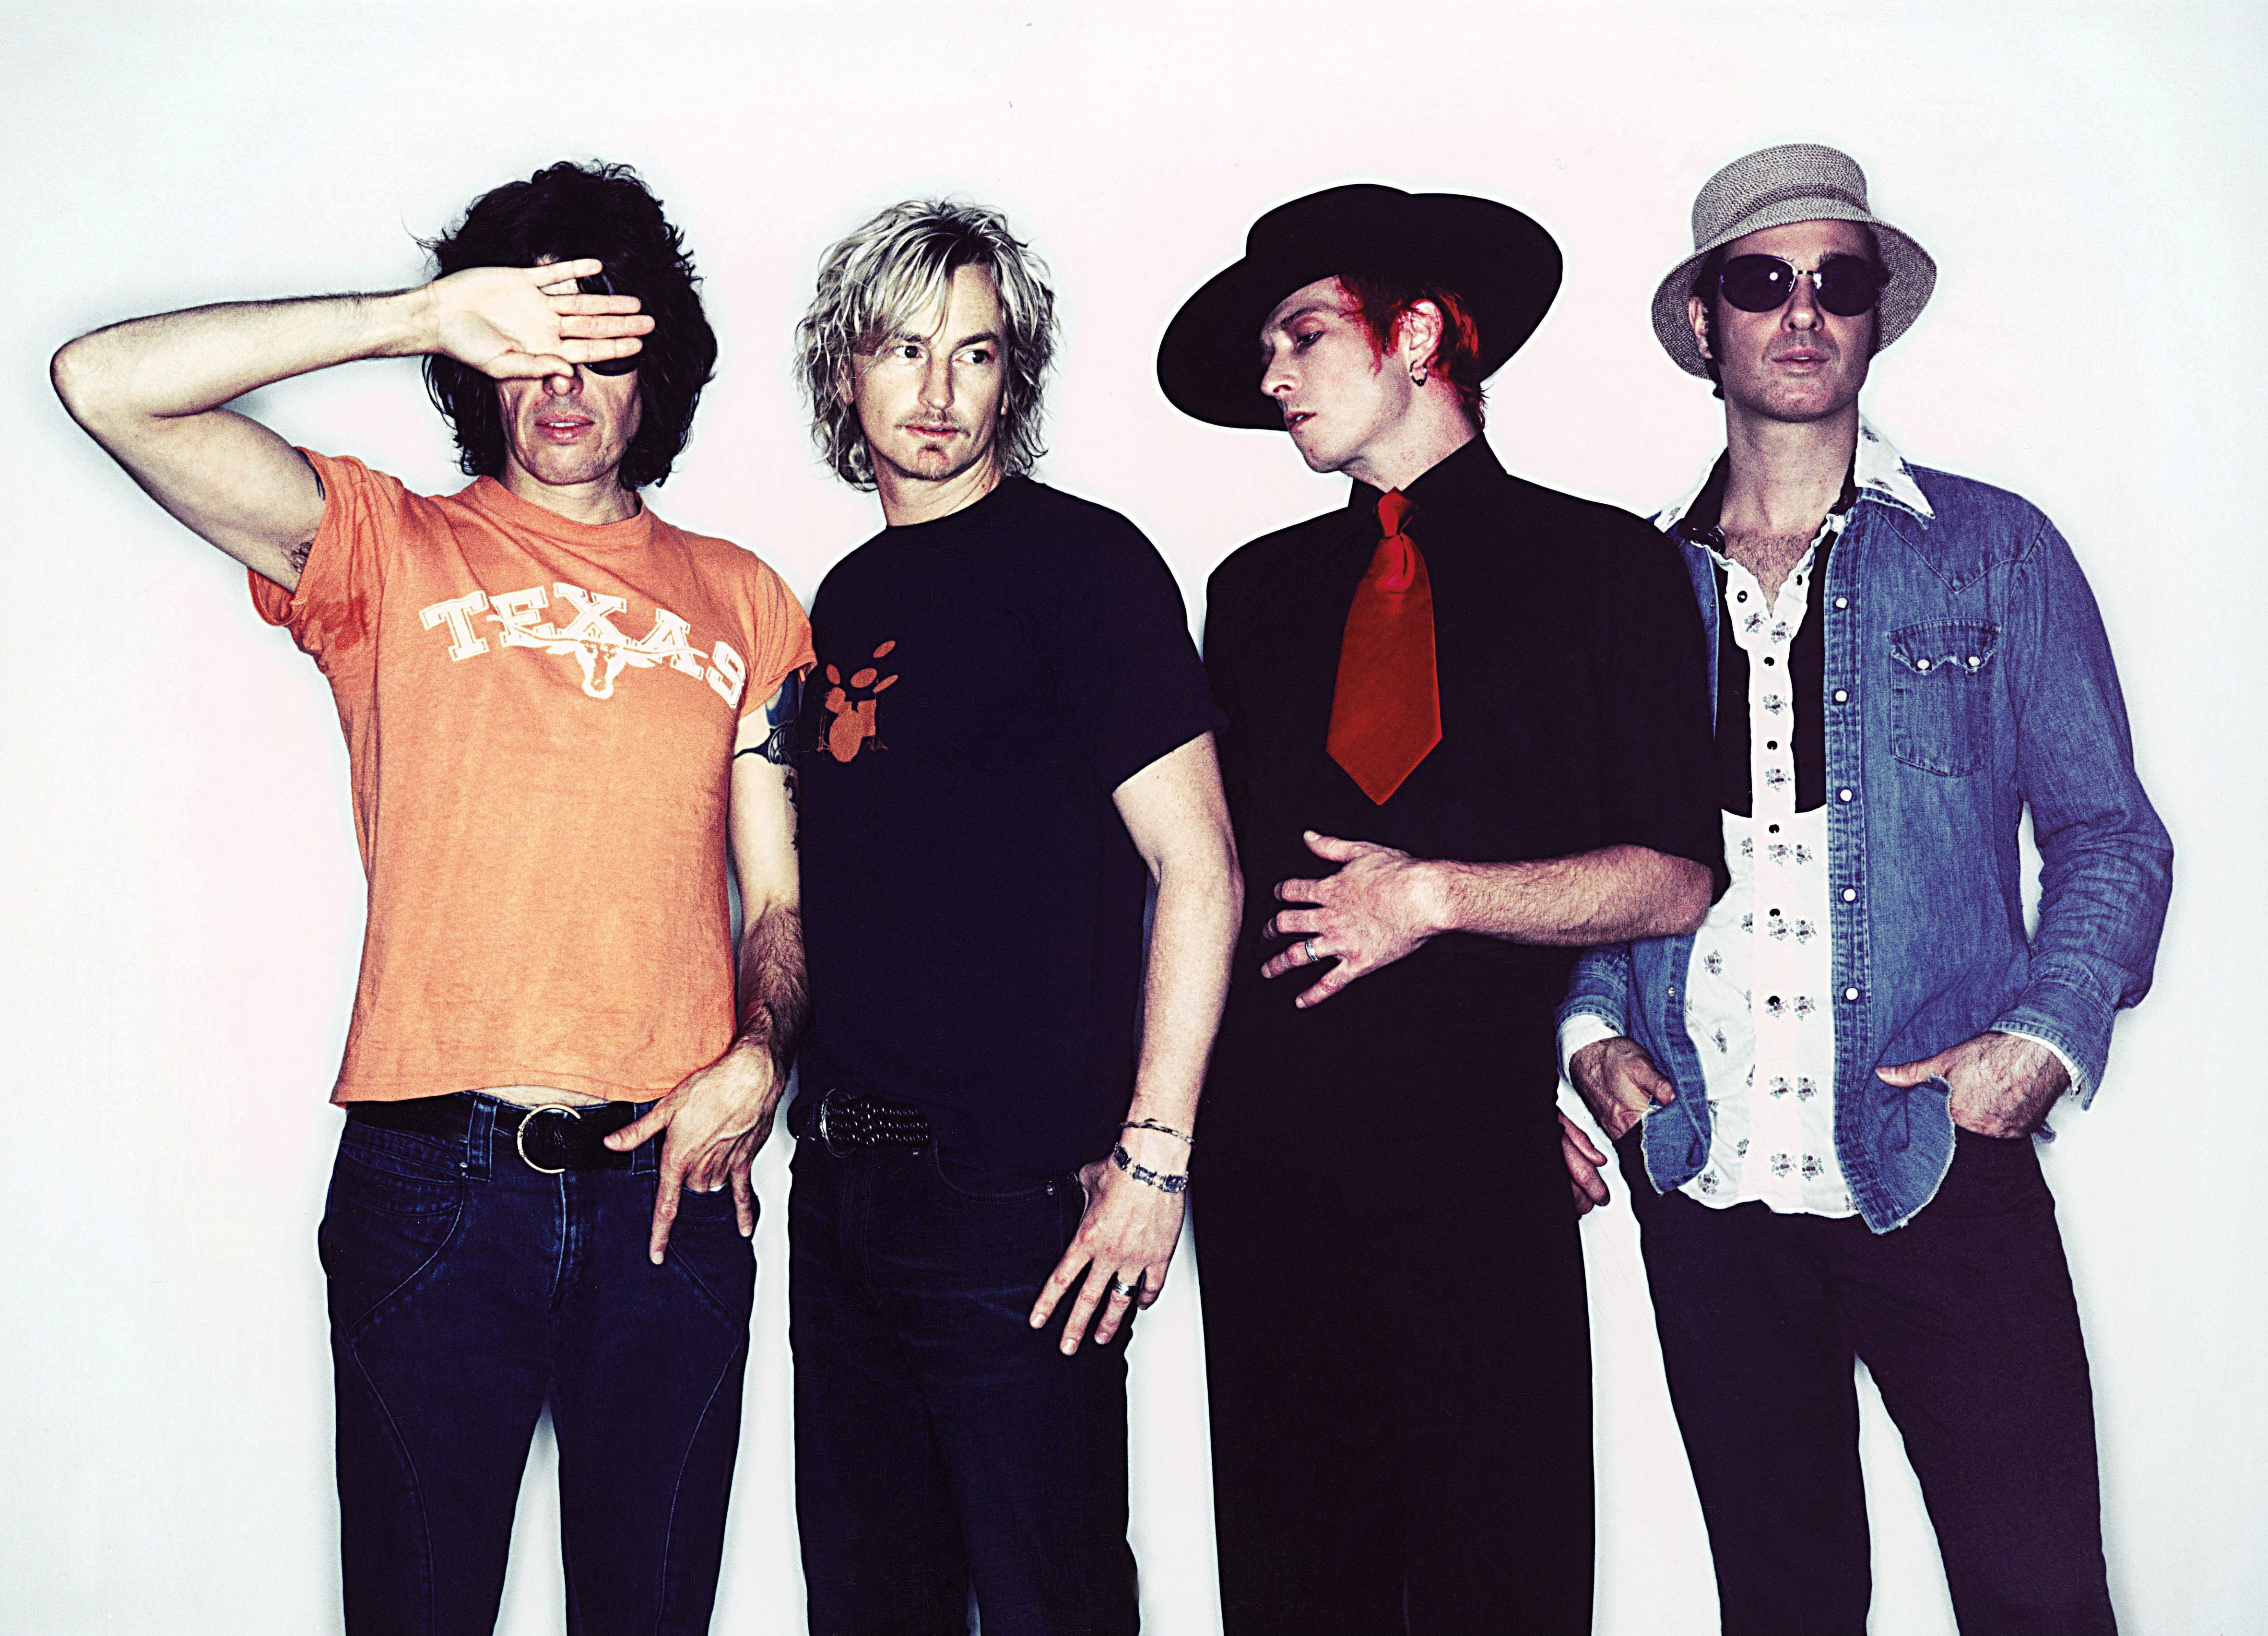 High Resolution Wallpaper   Stone Temple Pilots 4728x3410 px